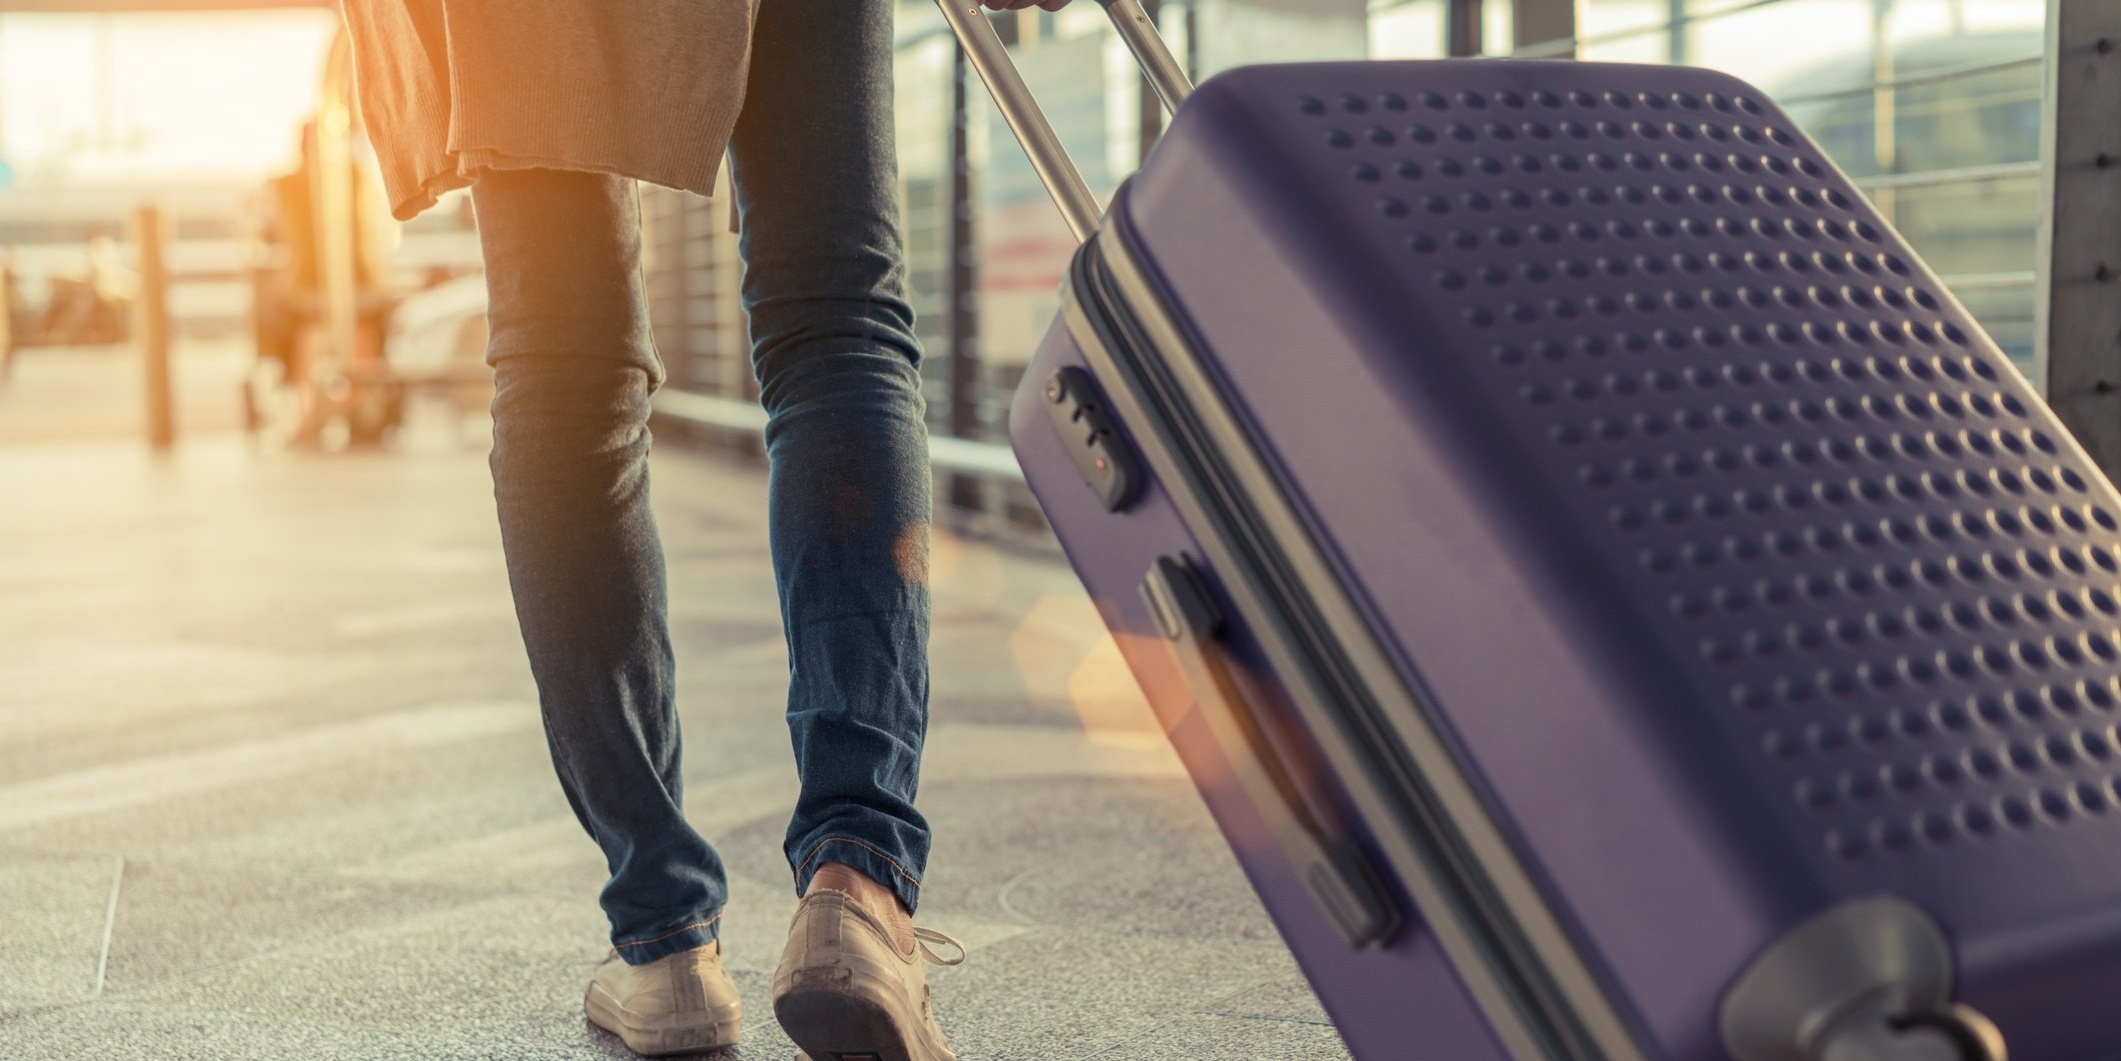 woman traveling in airport with suitcase